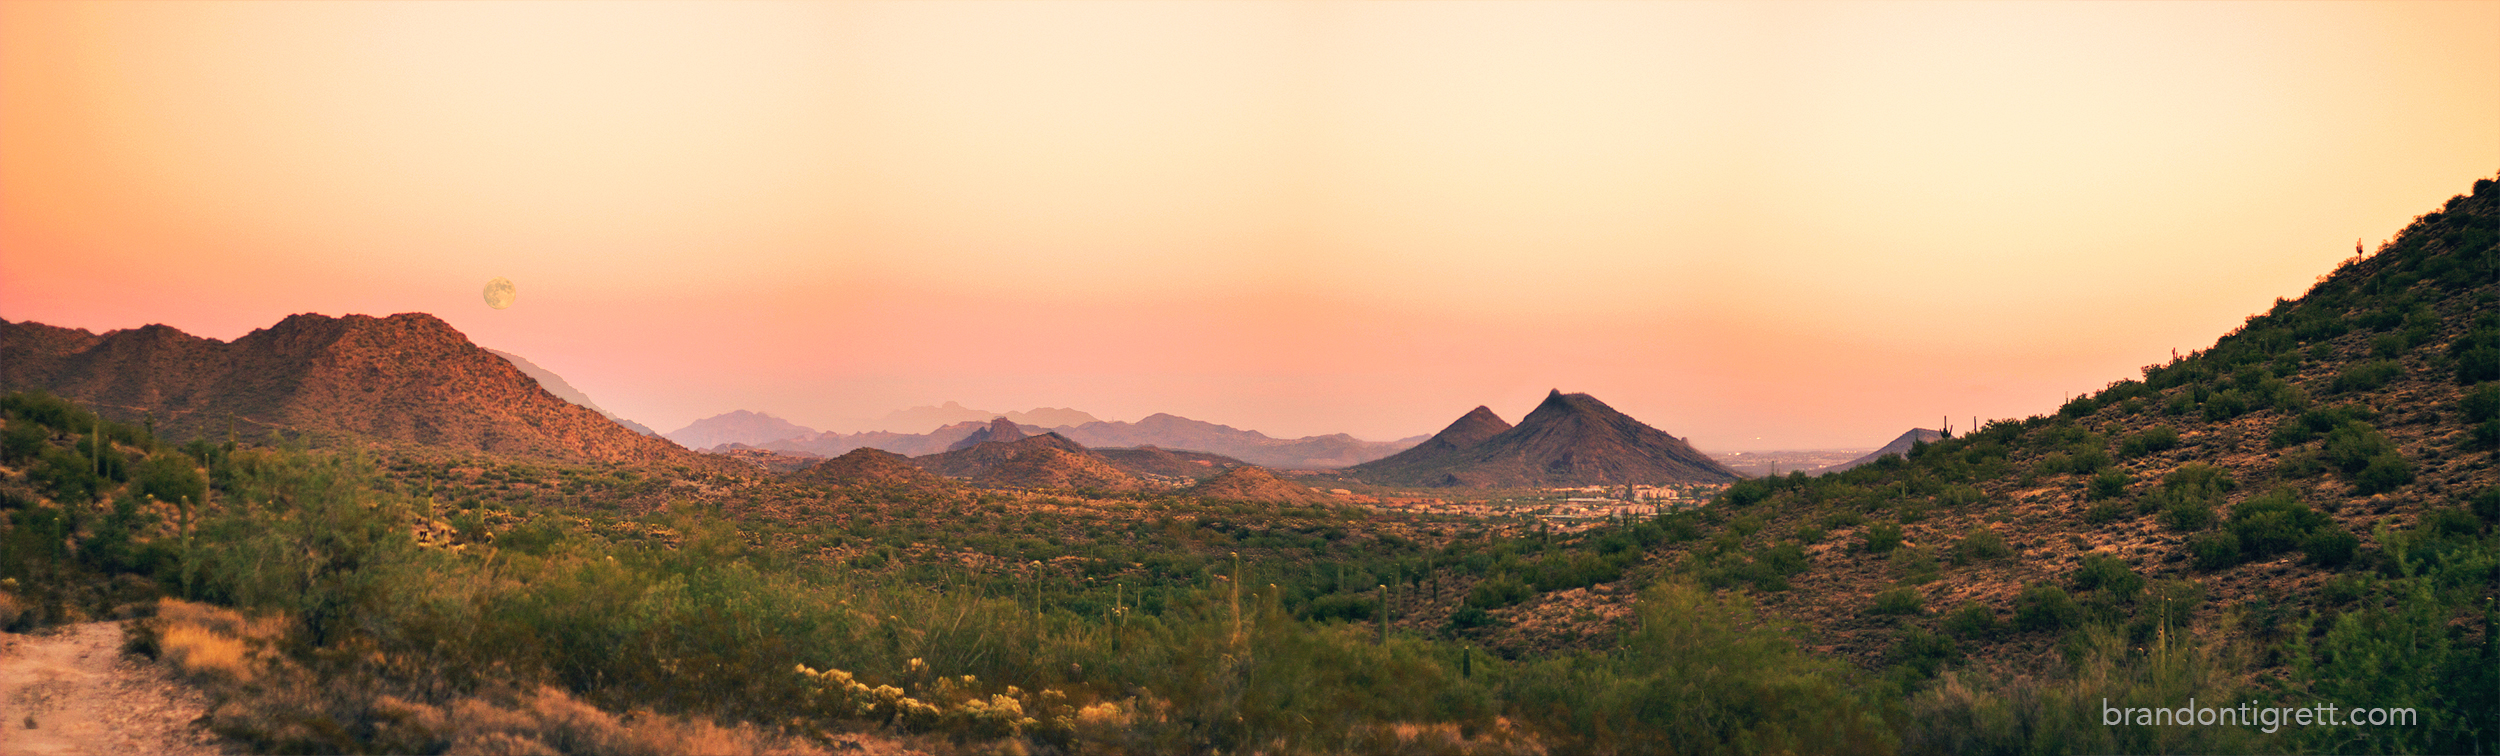 Lost Dog Trail Scottsdale, AZ Panoramic